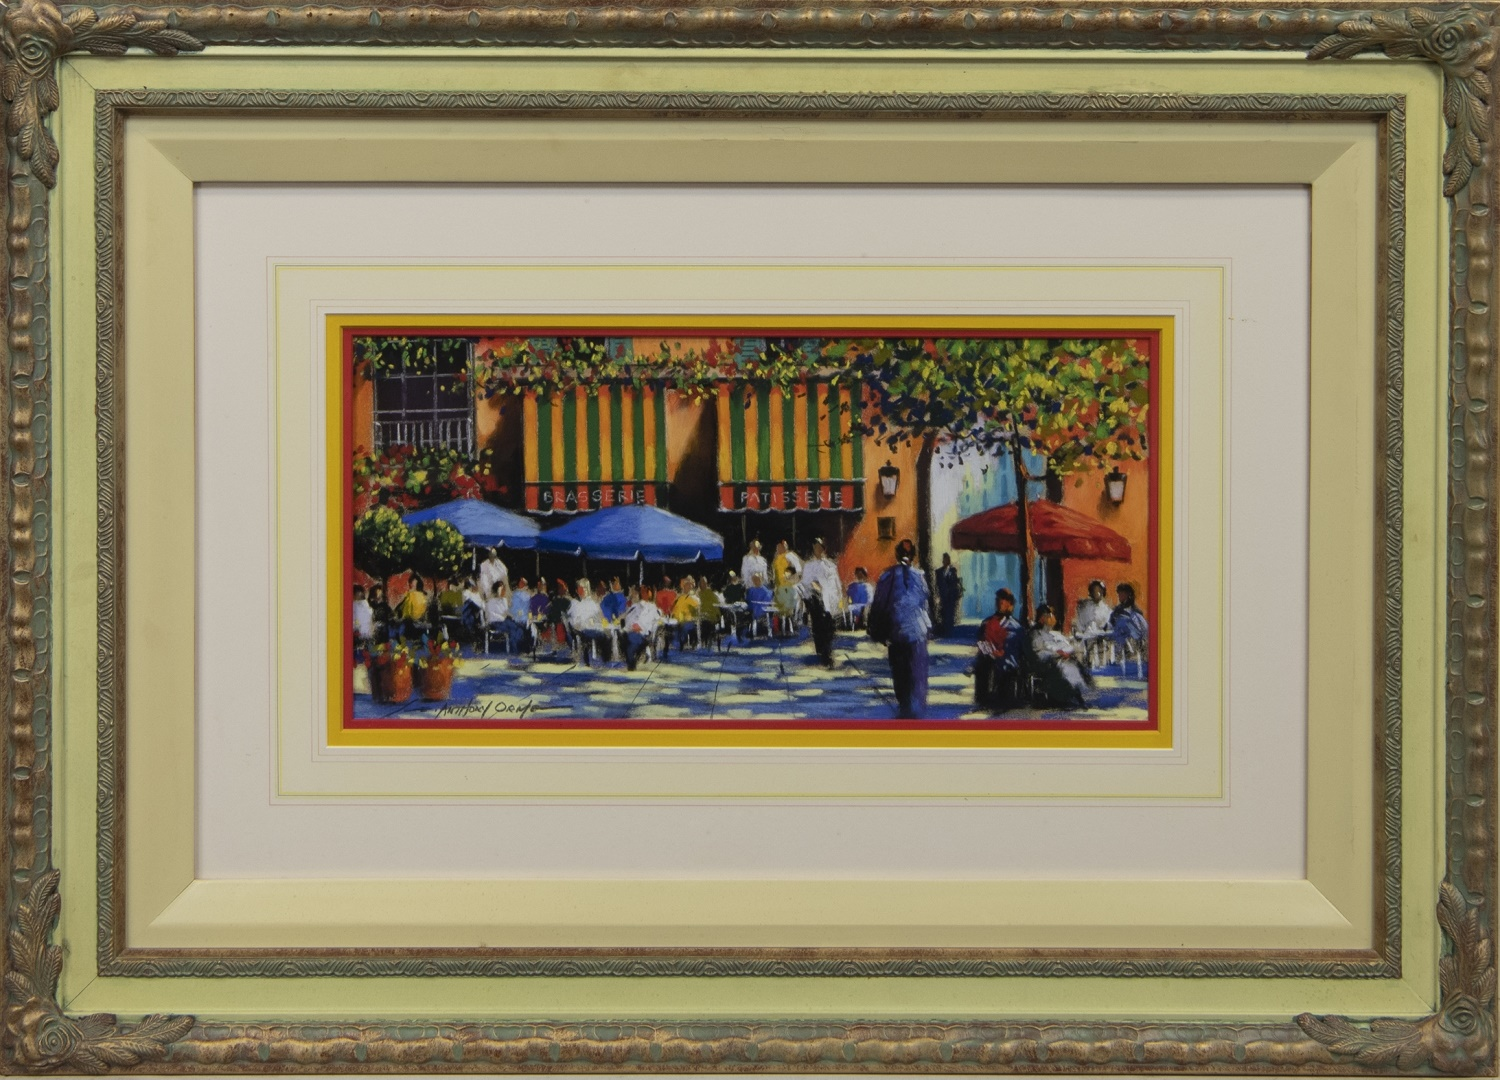 AT THE BRASSERIE, A PASTEL BY ANTHONY ORME